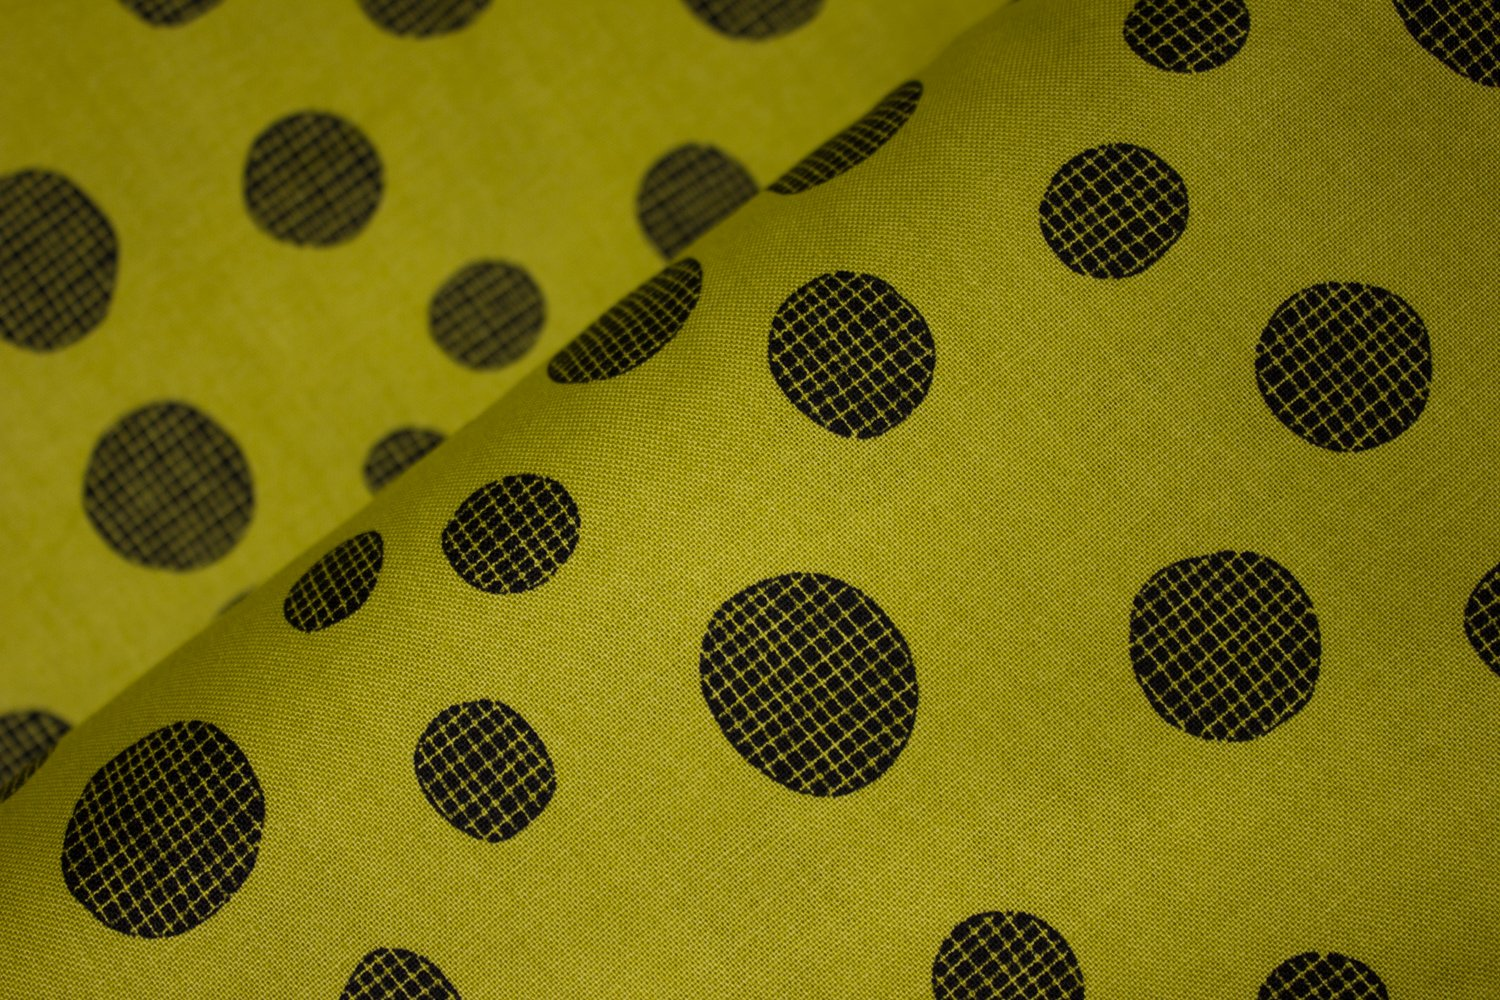 Black Gridded Circles on Olive Green:  Summer Daze - Circles by Nutex